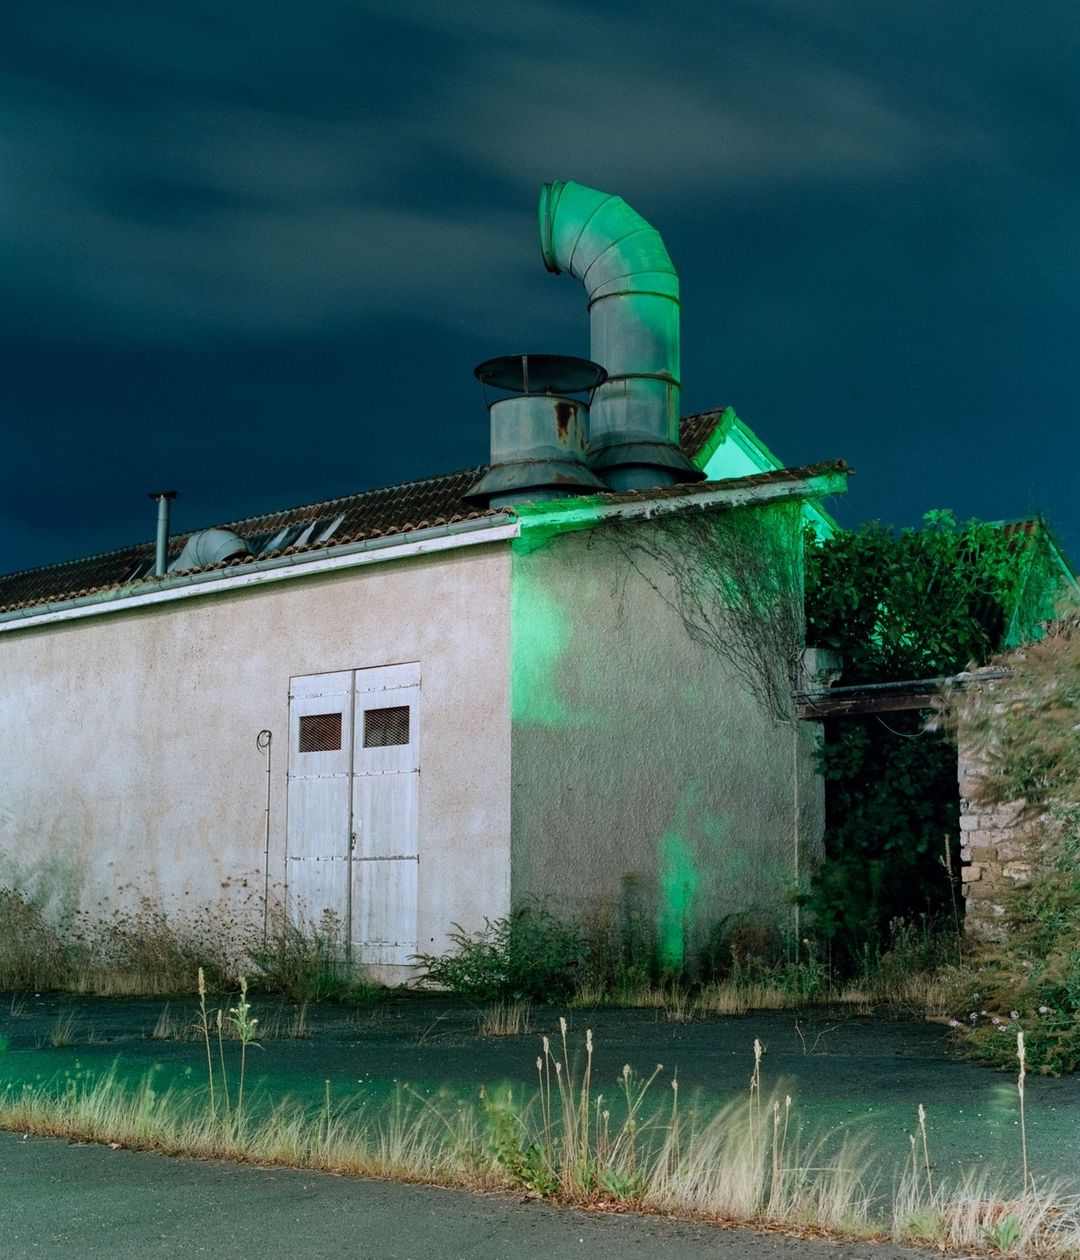 night time shot of a house with green light